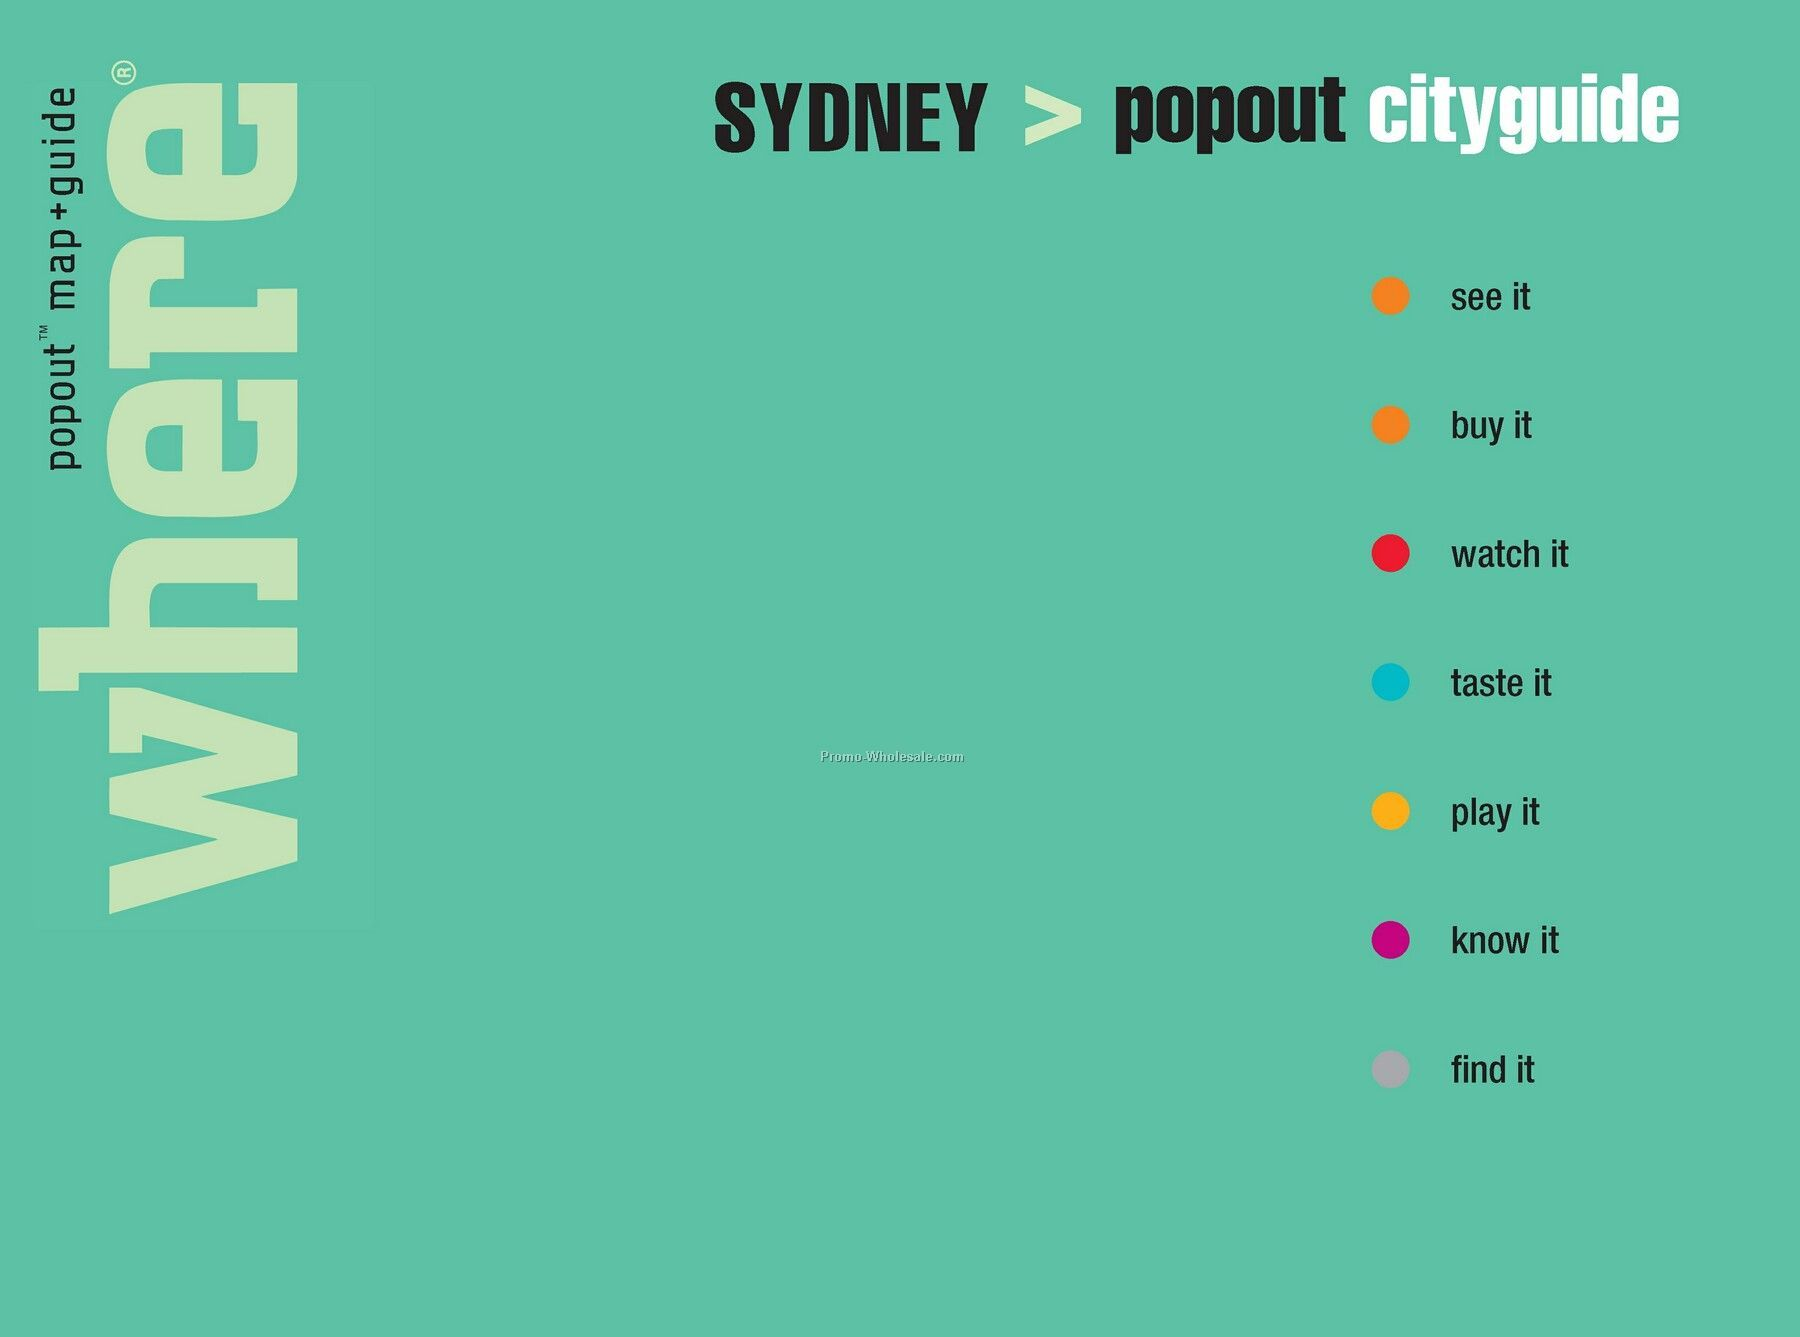 Travel Guides - International Guide Of Sydney - Featuring Popout Maps